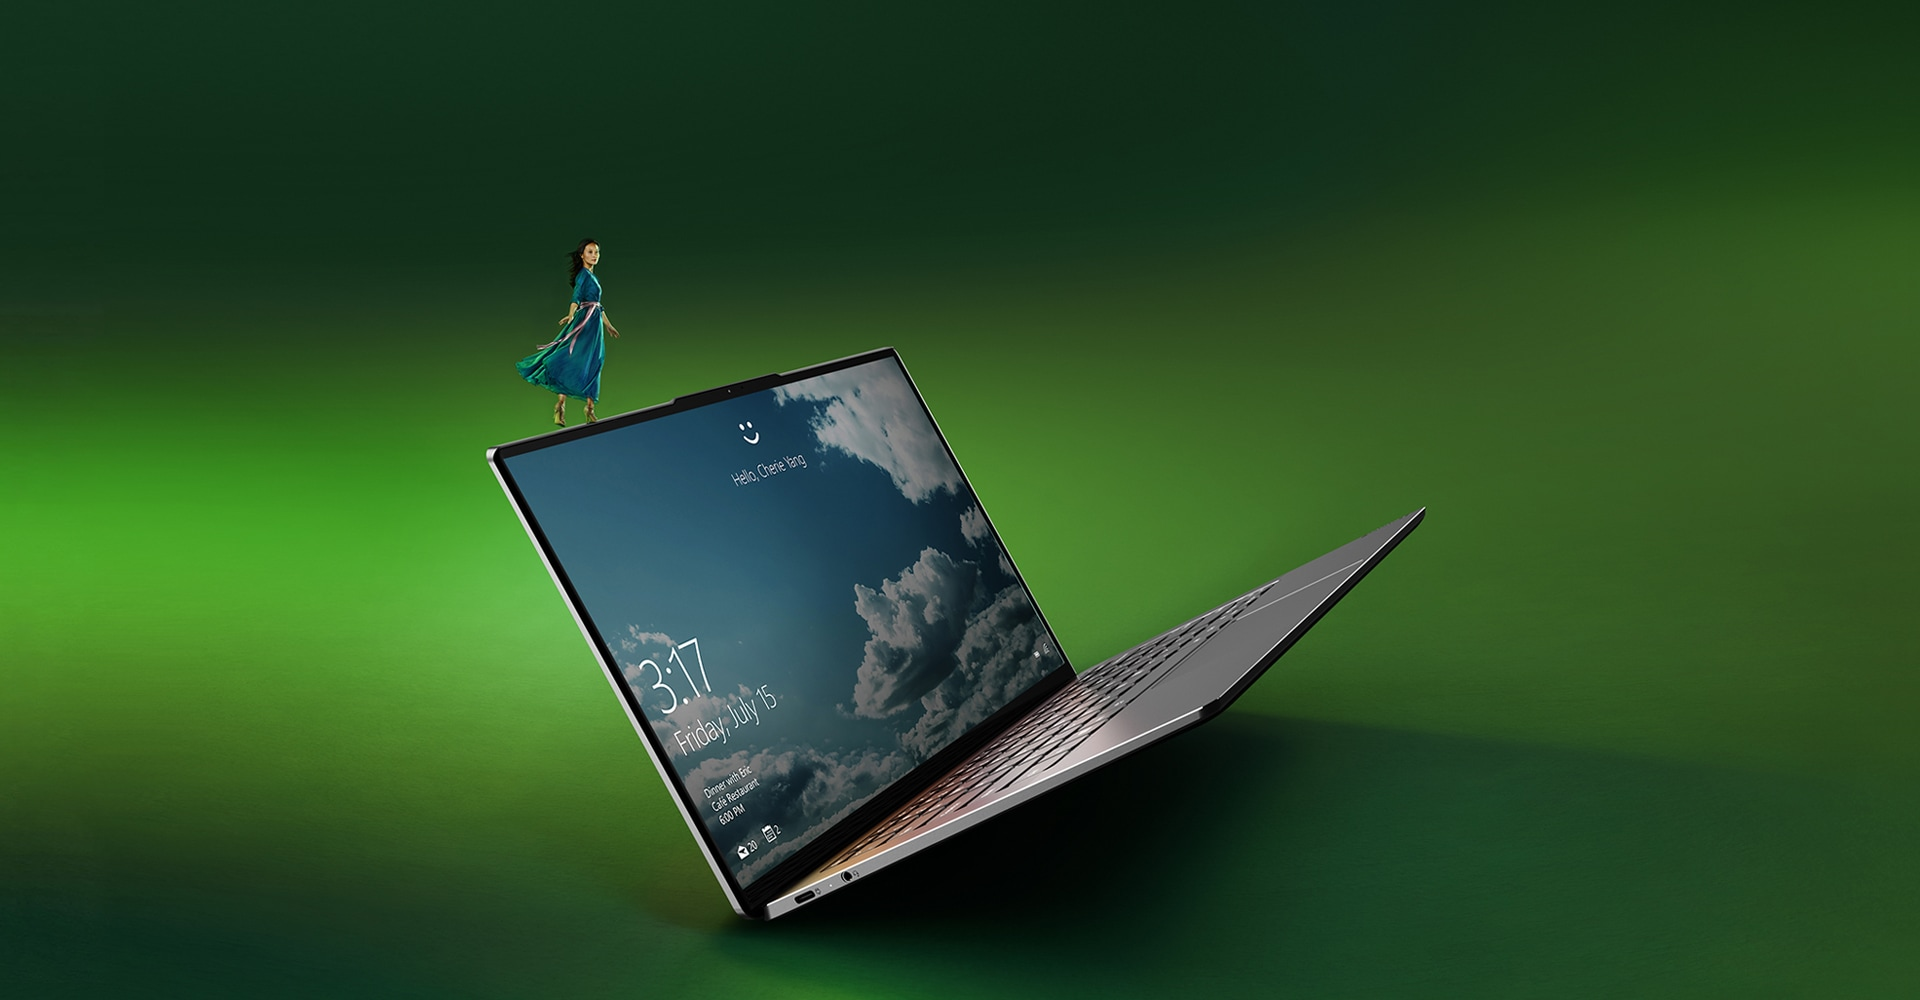 lenovo ultrathin